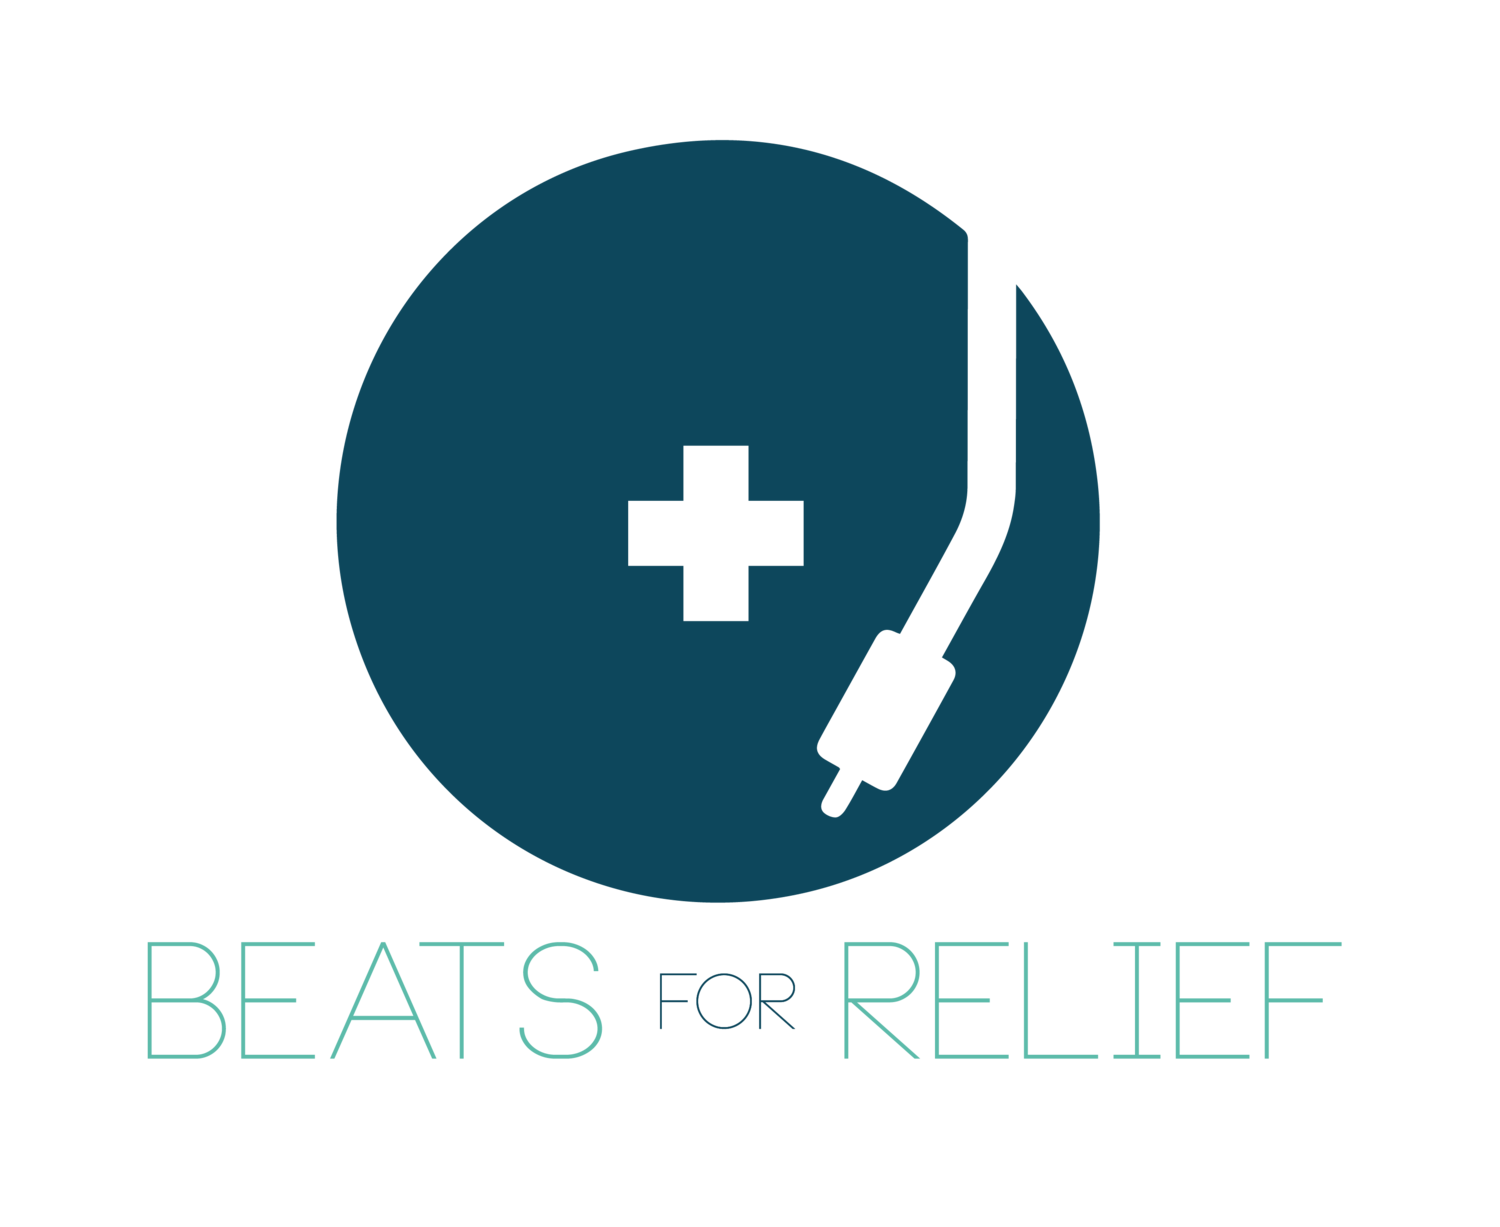 Beats for Relief